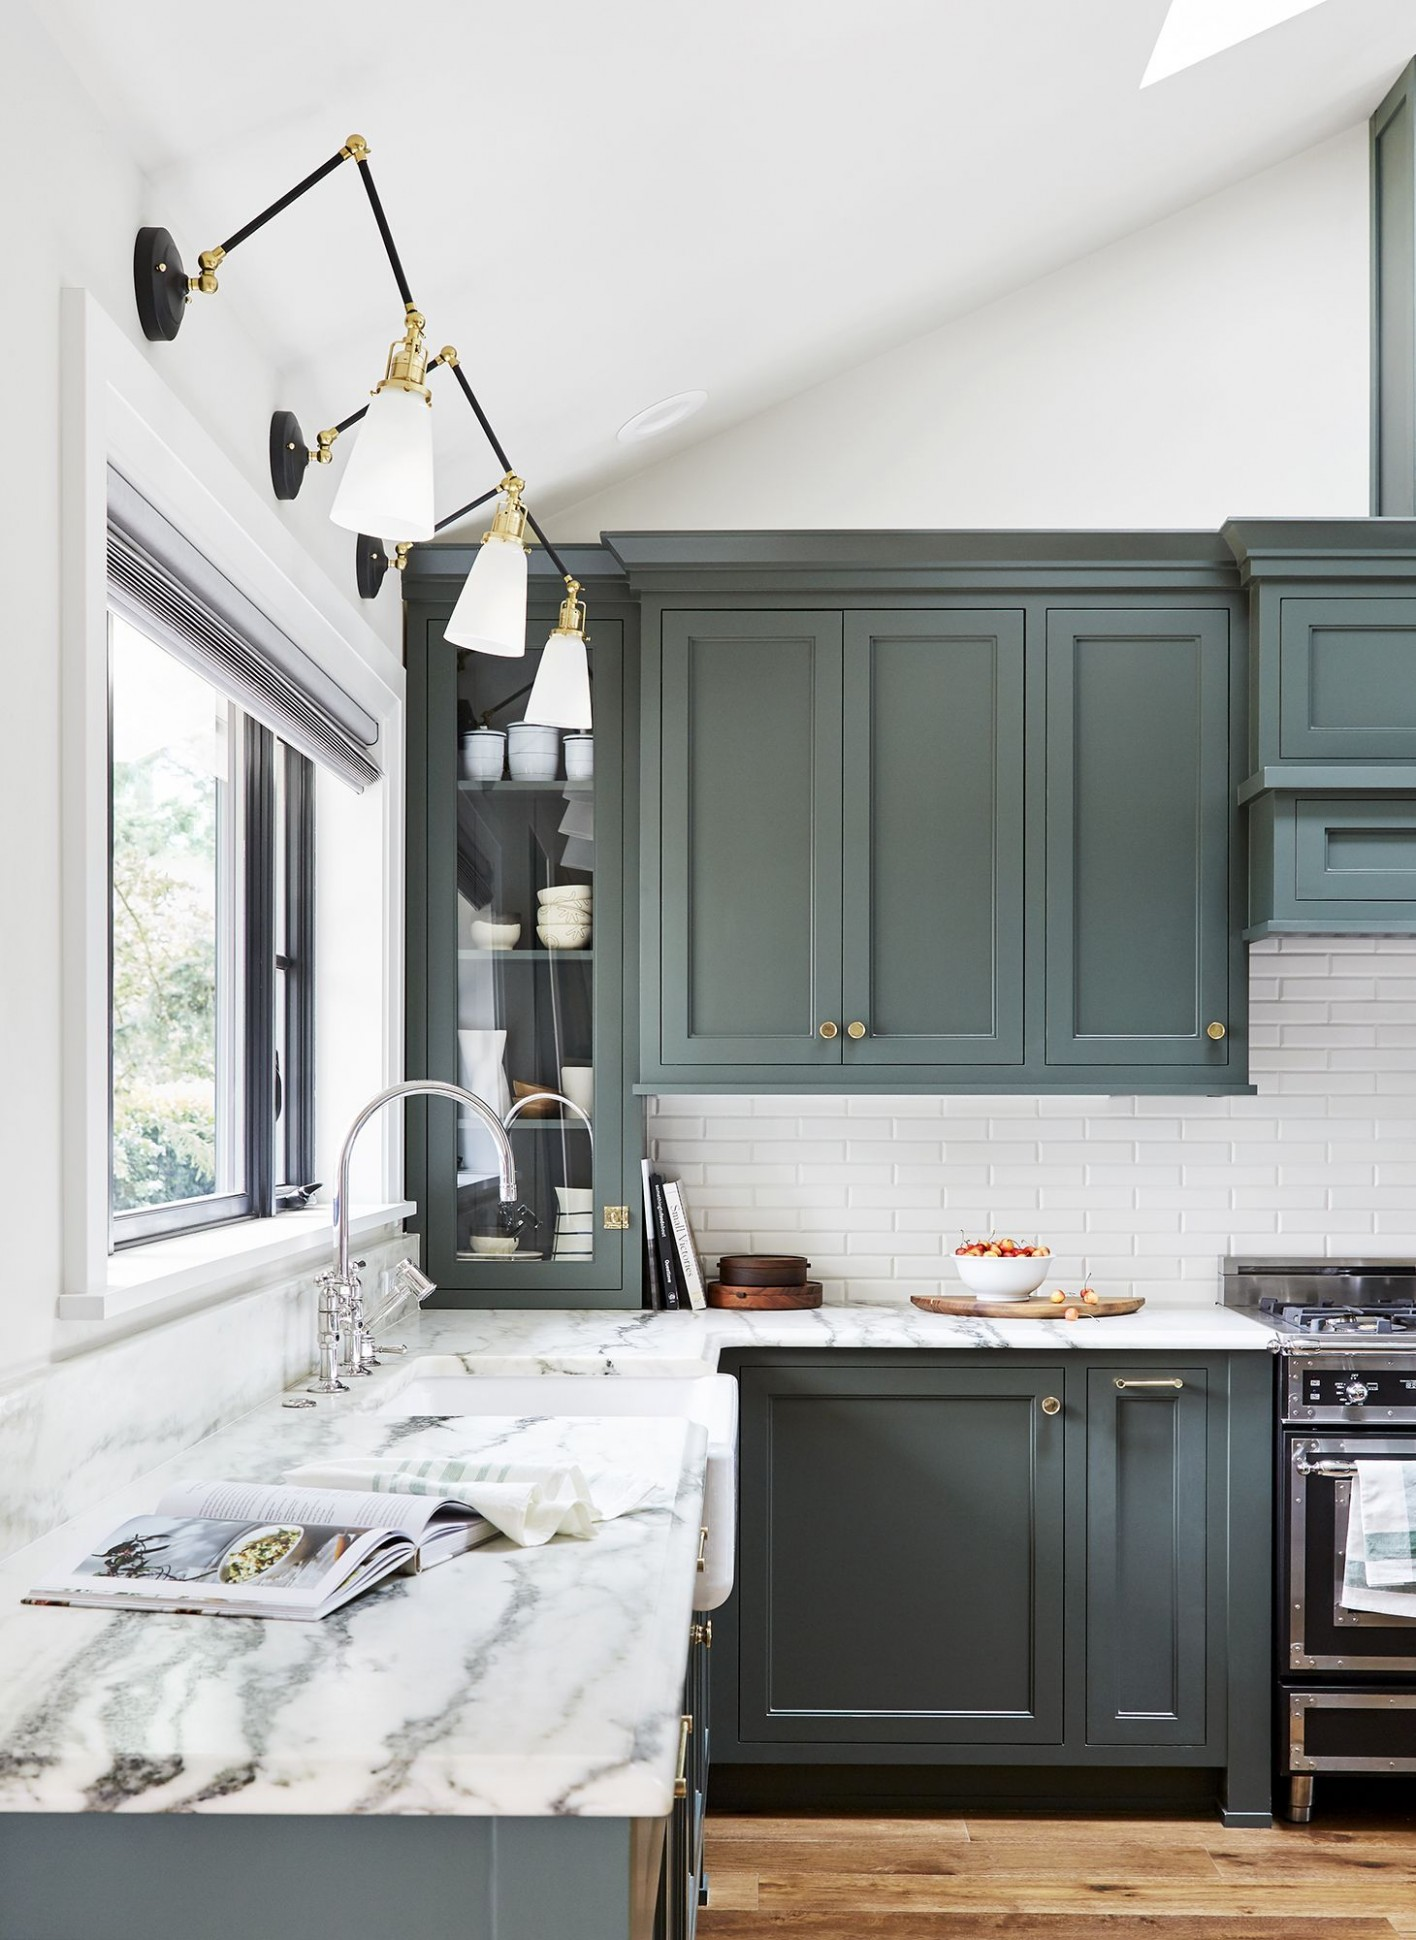 How to Paint Your Kitchen Cabinets - Best Tips for Painting Cabinets - Is It Possible To Paint Kitchen Cabinets